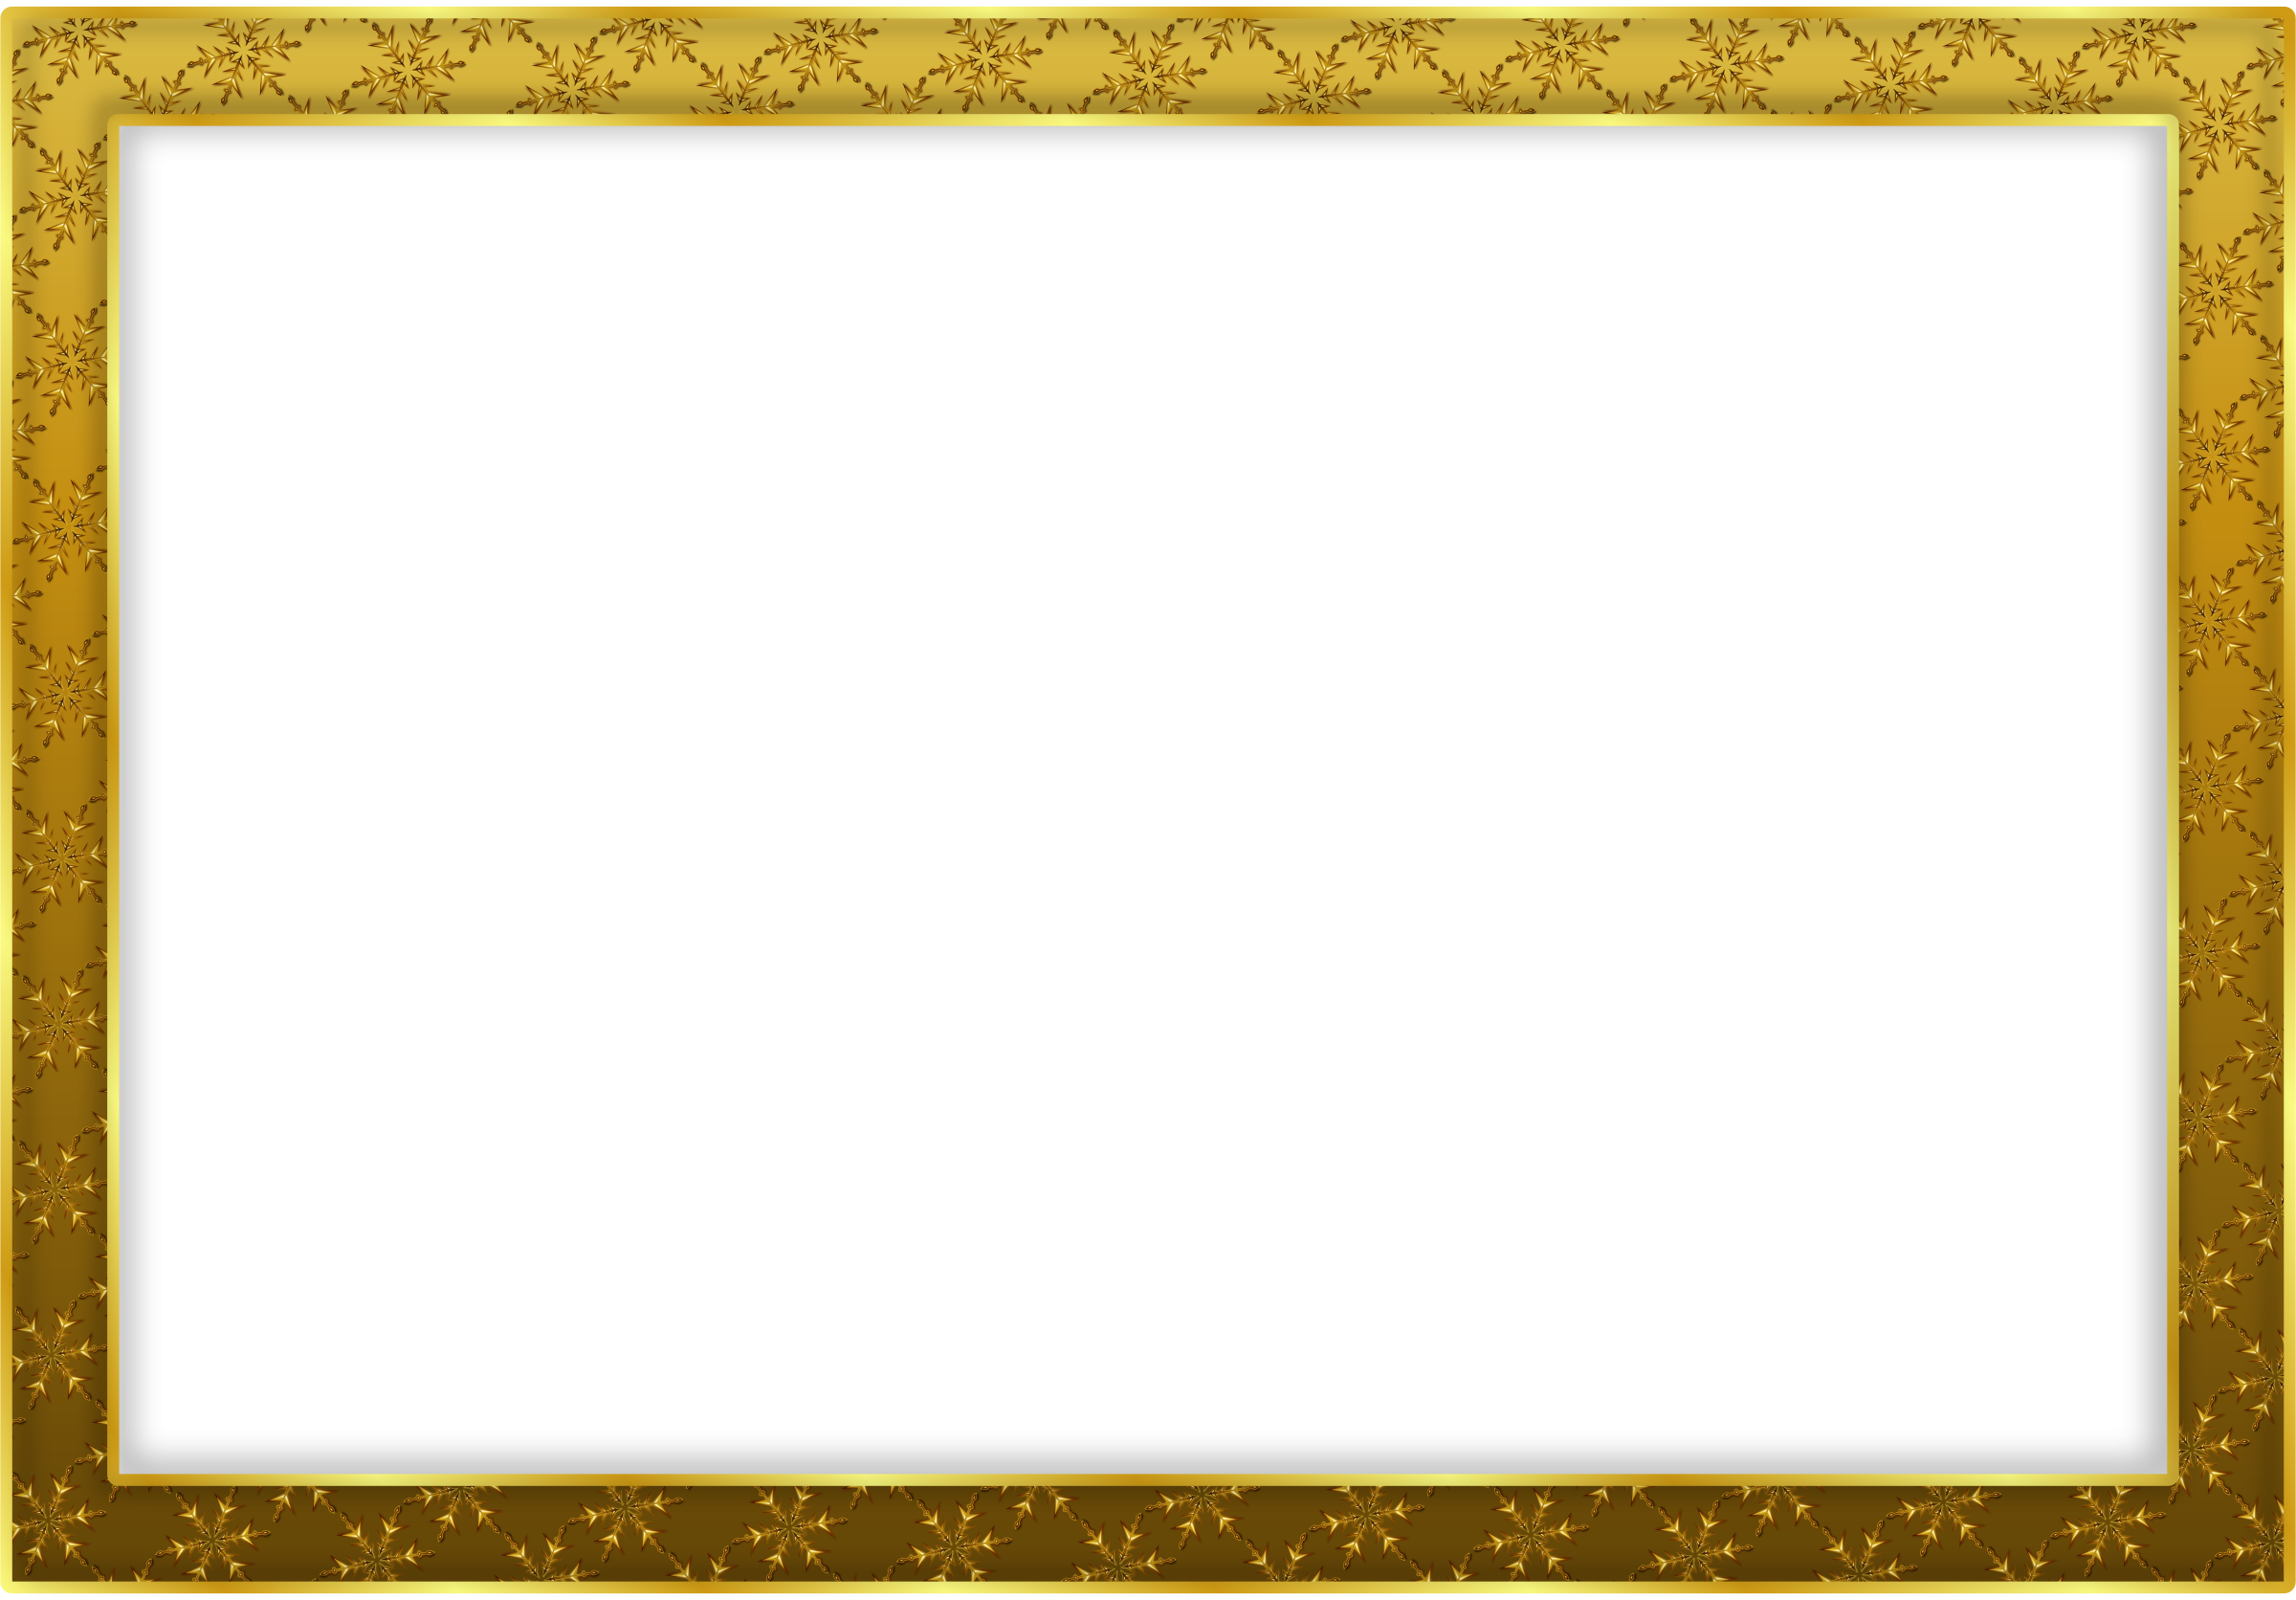 Frame photo png free. Gold image